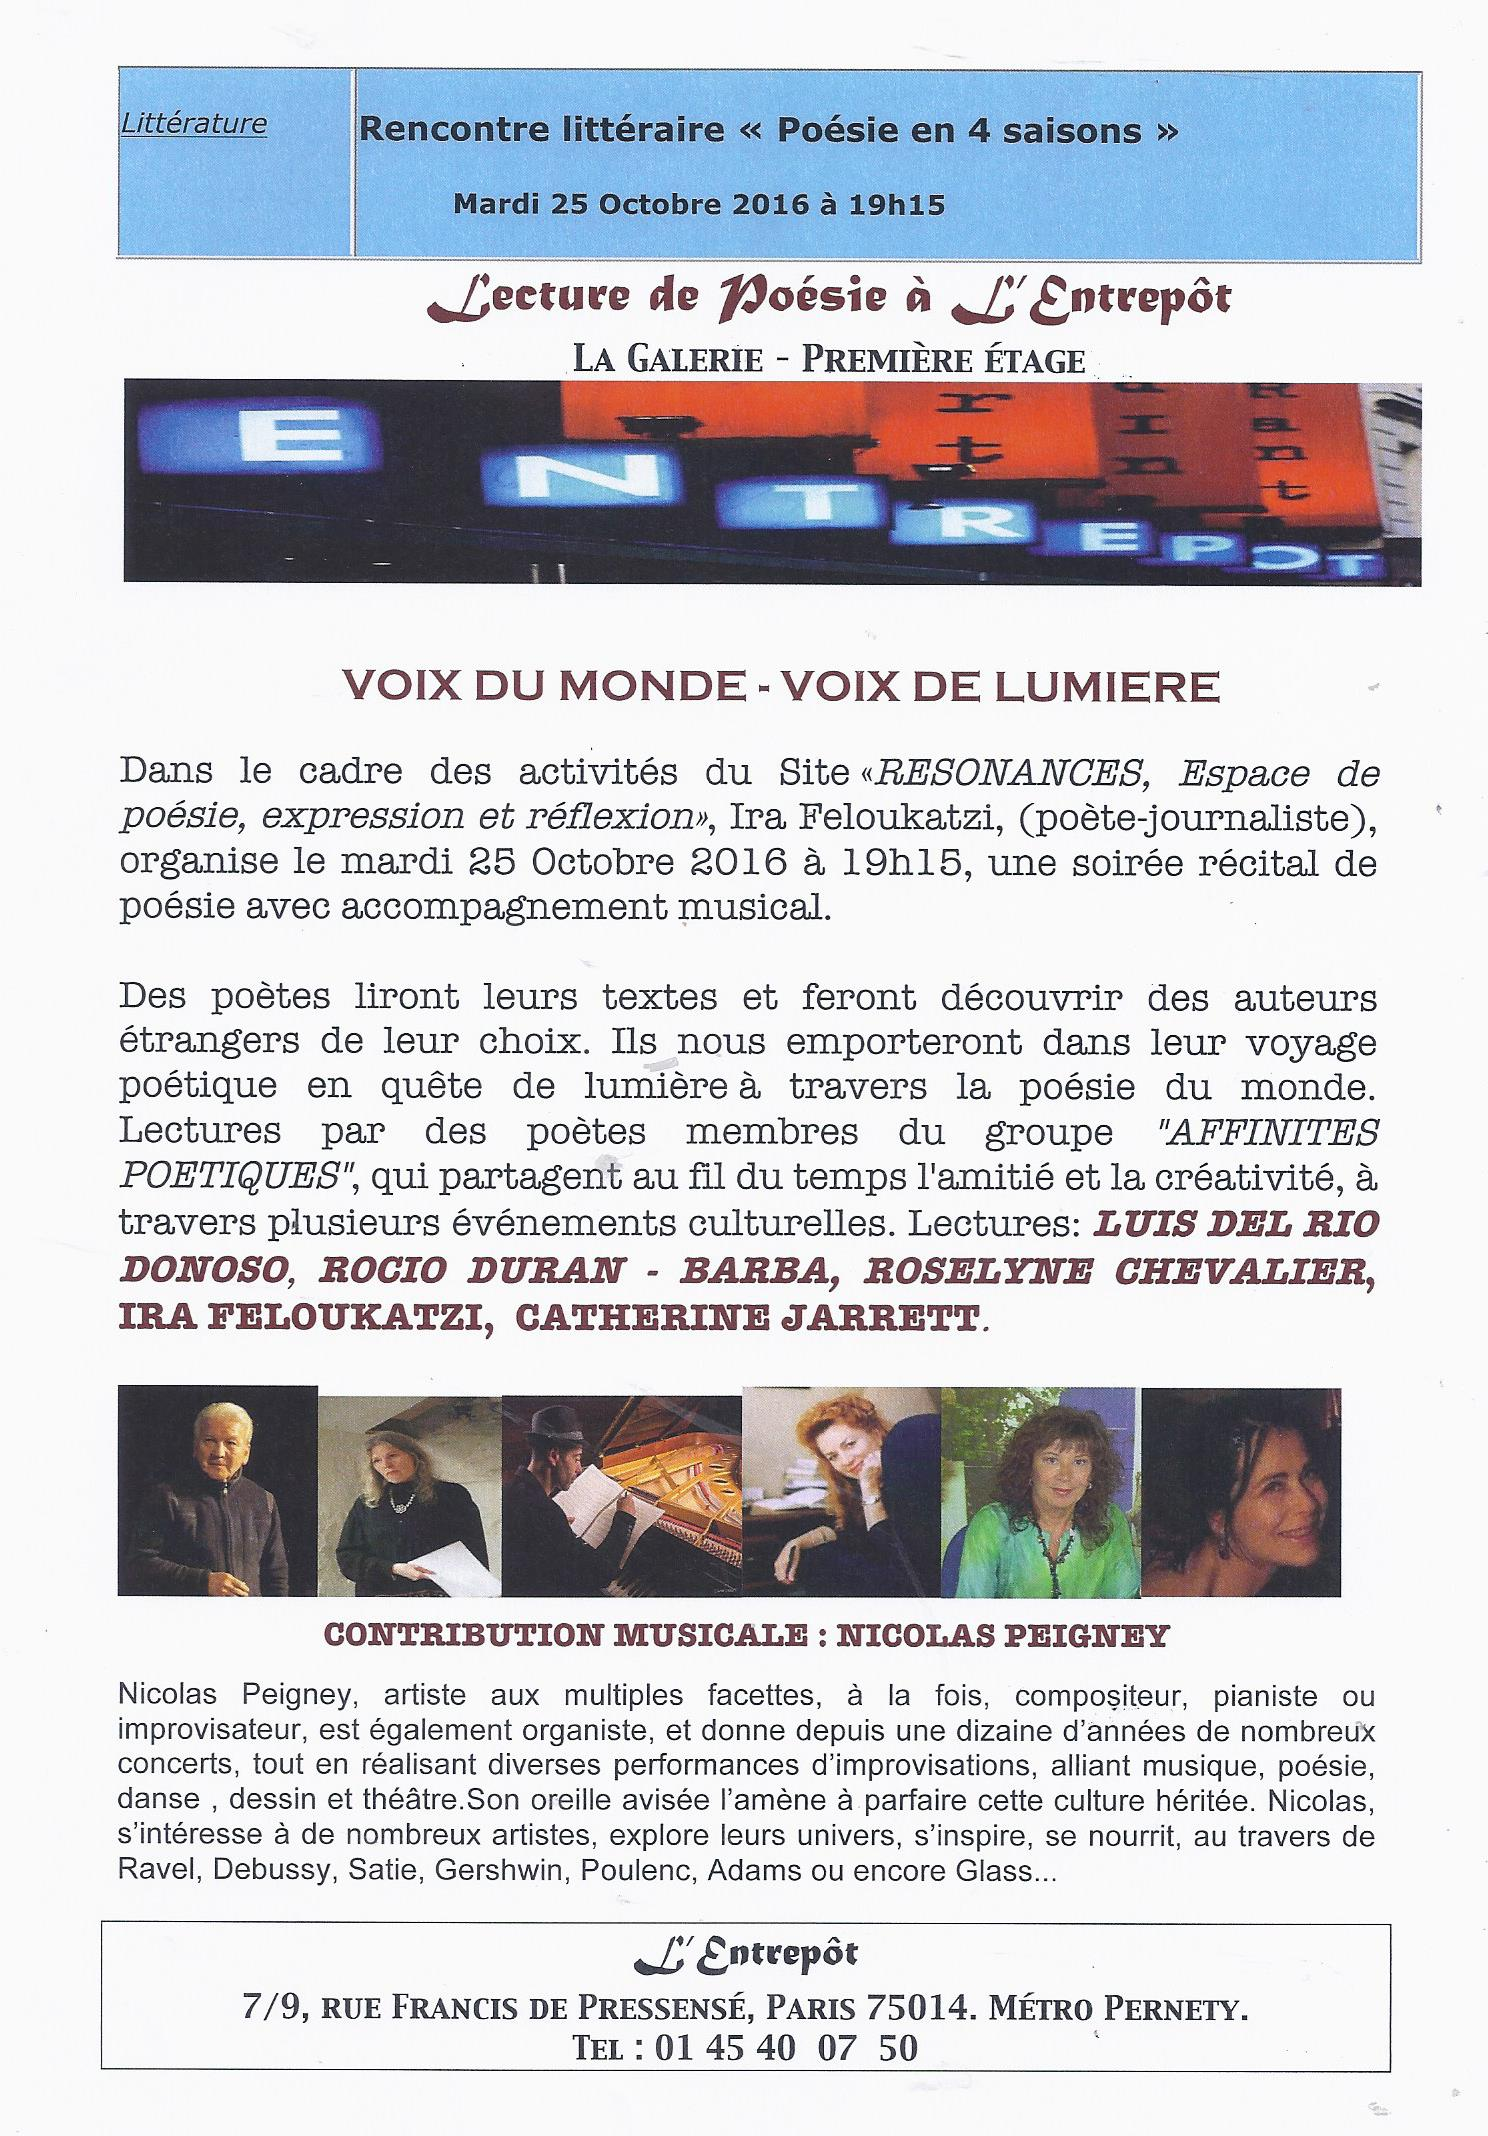 EVENEMENT LITERAIRE ET MUSICAL